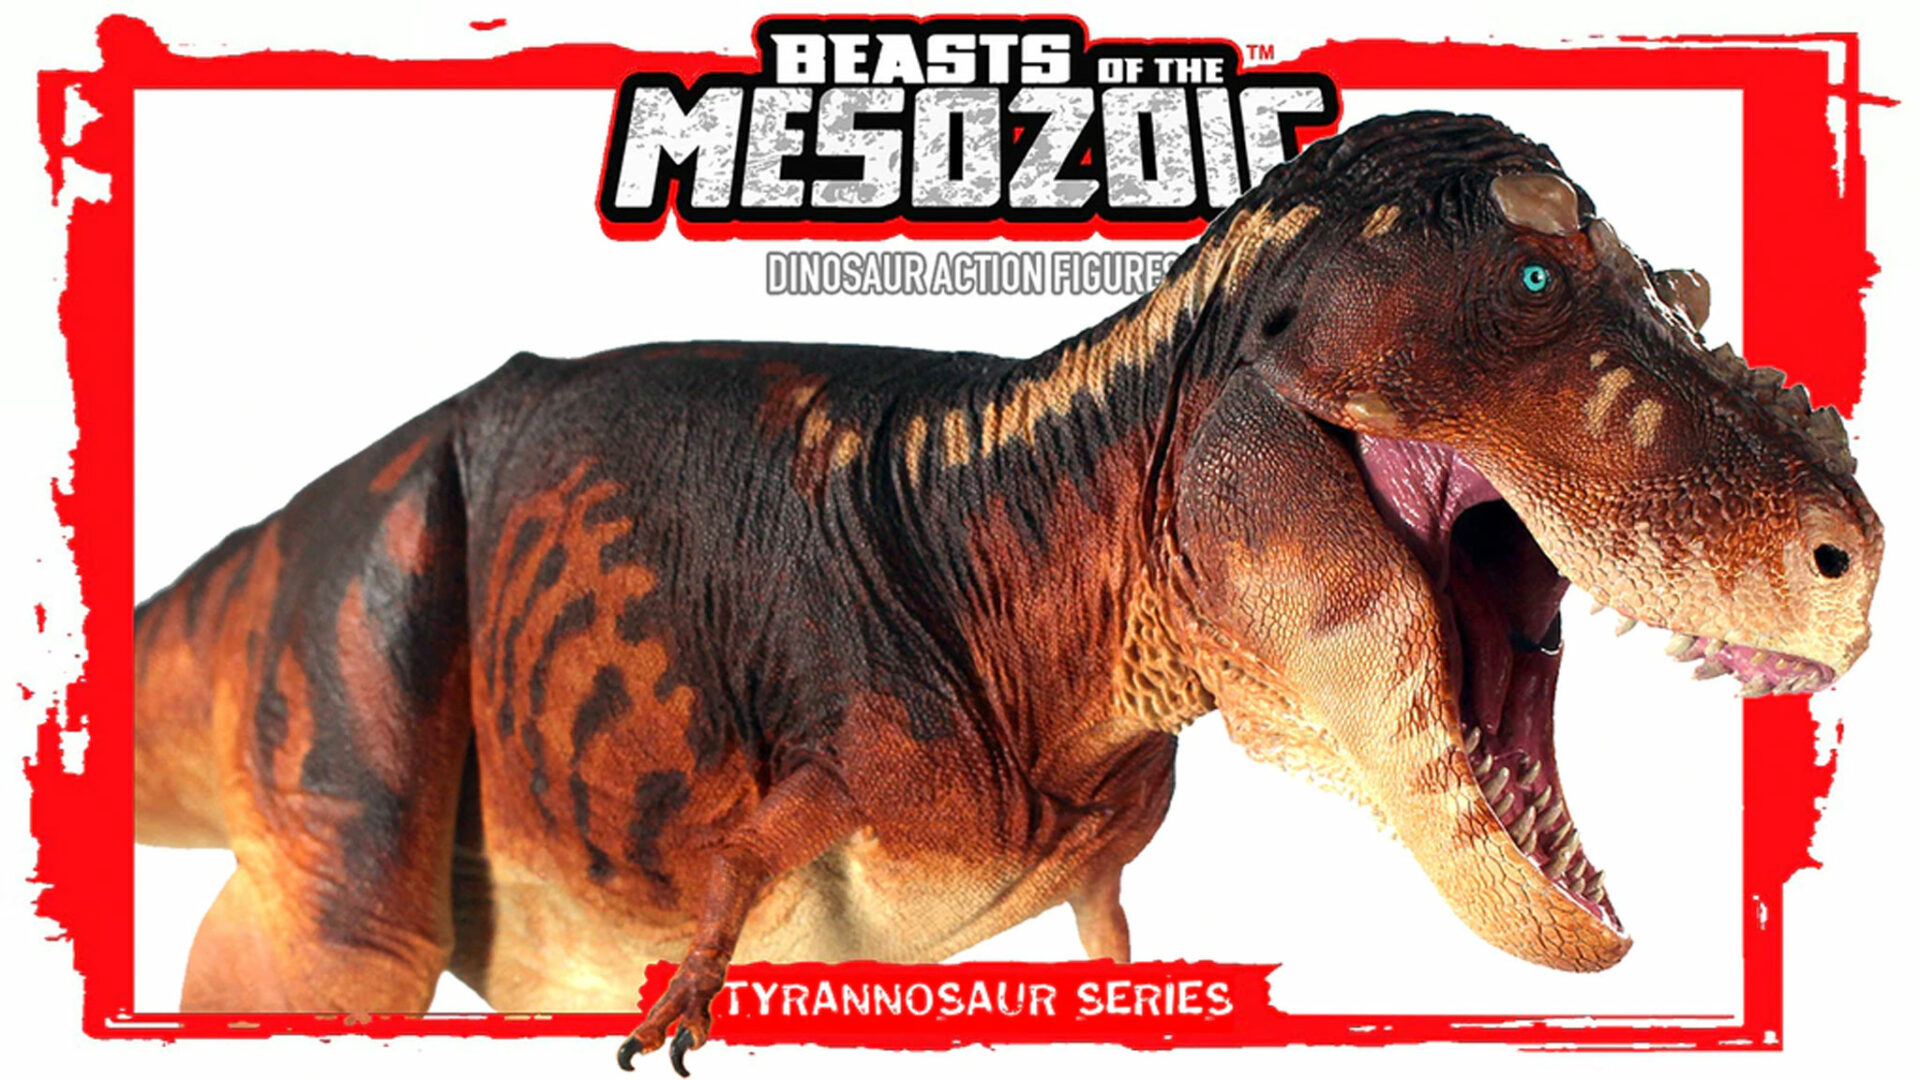 """Kickstarter Launched for Latest """"Beasts of the Mesozoic: Tyrannosaur"""" Action Figure Series"""